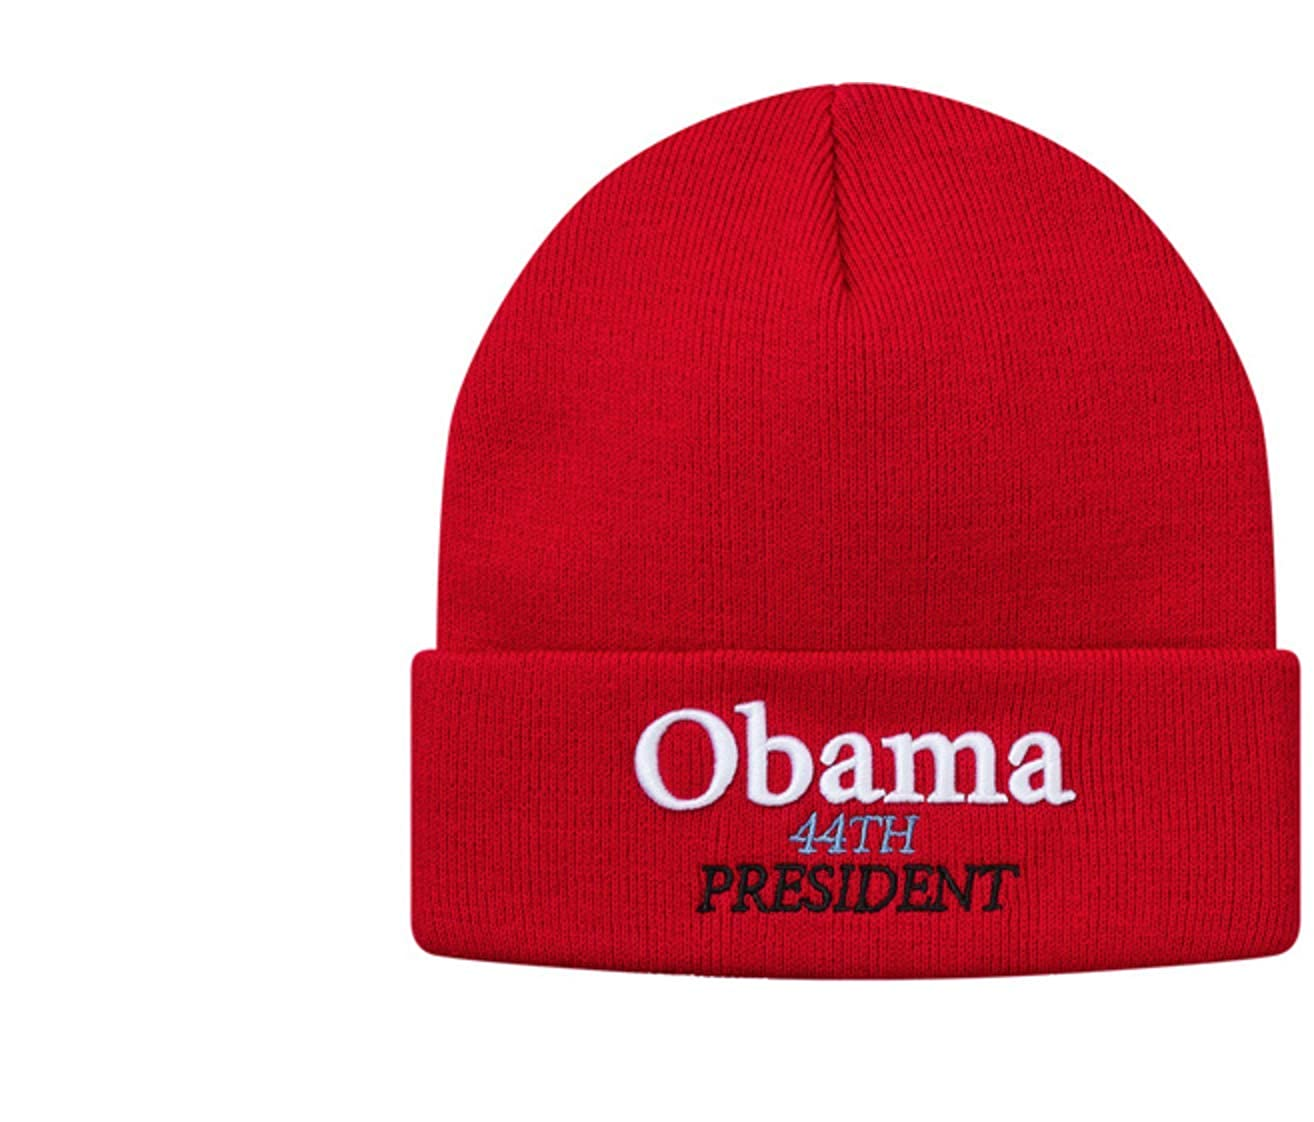 ff82c6a192 Amazon.com  SupremeNewYork Supreme Obama Beanie Red 100% Authentic Real  Designer Sold Out Rare-  Clothing